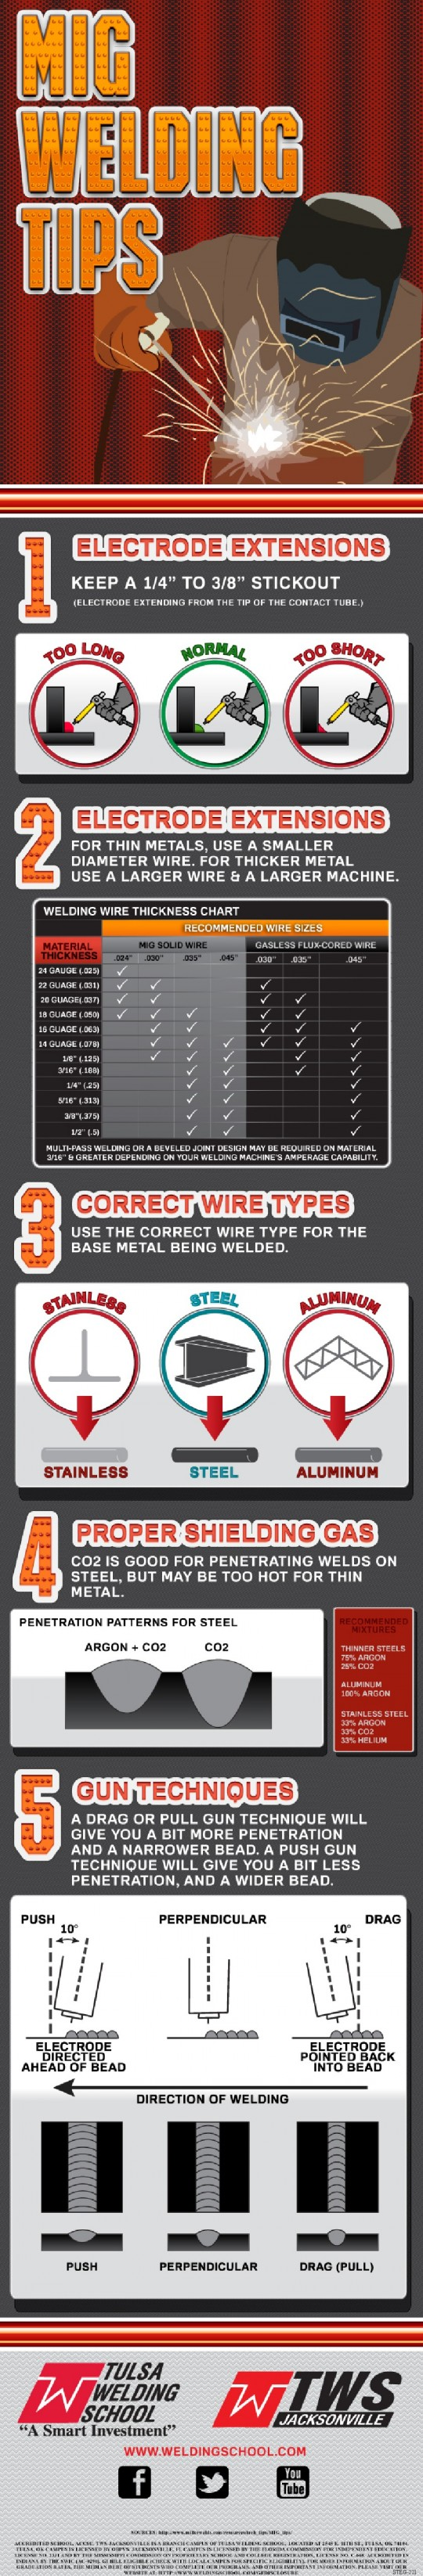 Mig-Welding-Tips-Infographic-Chart